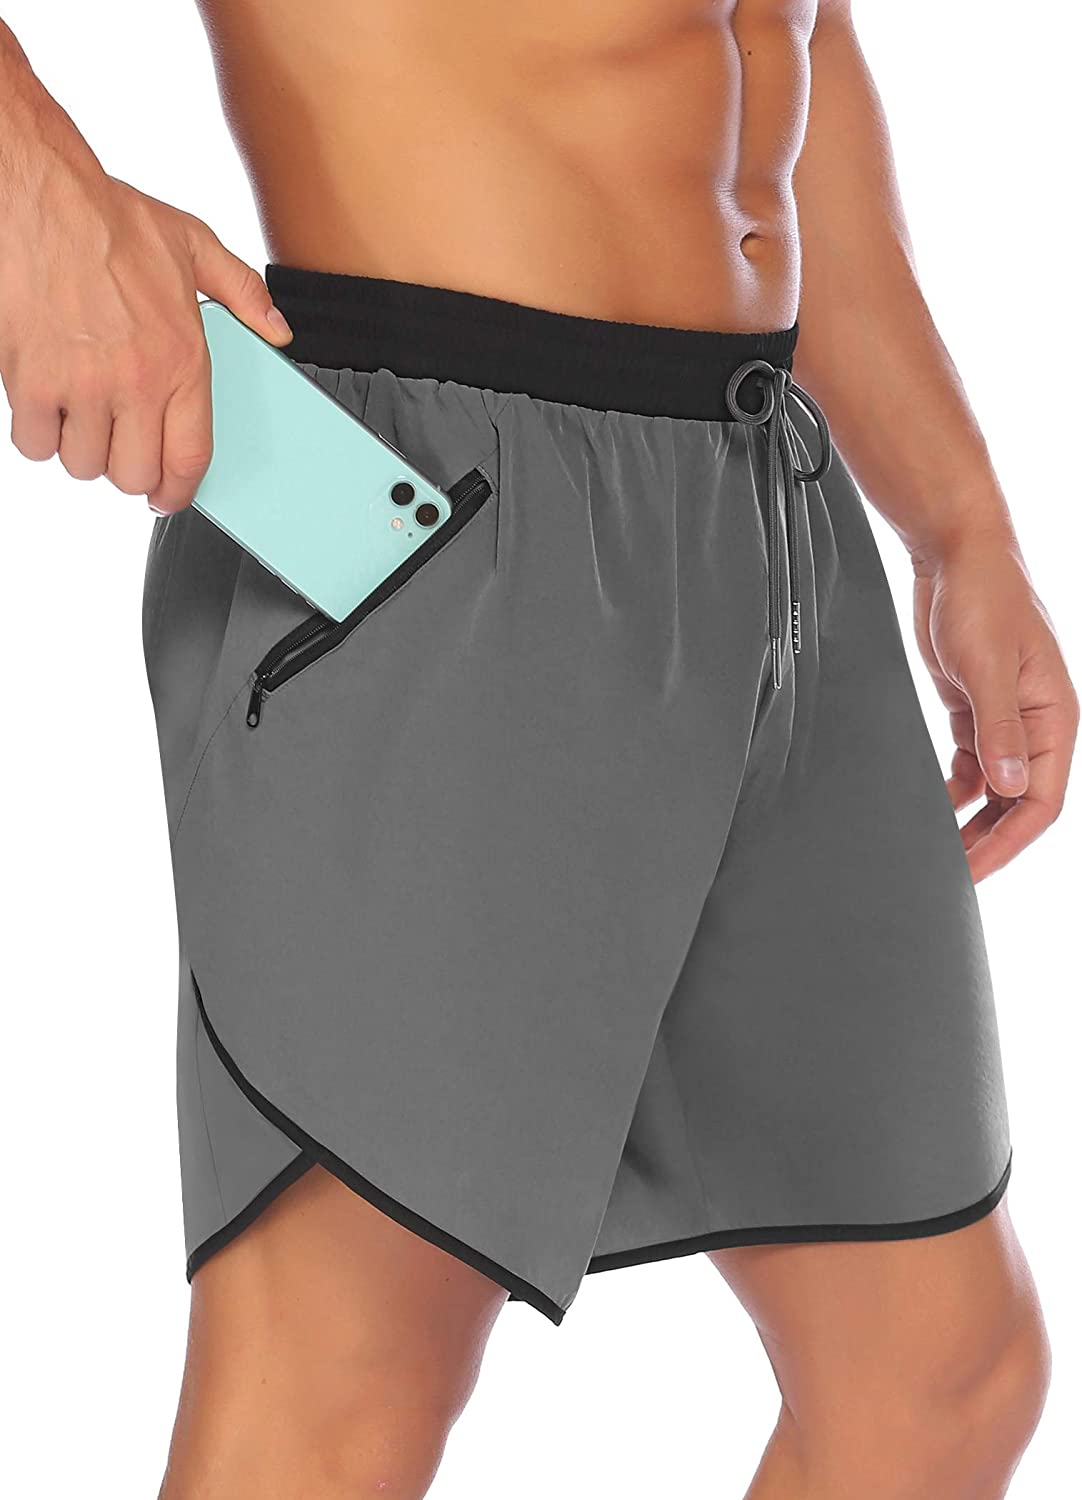 """COOFANDY Men's 7"""" Running Shorts Quick Dry Gym Workout Short Pants Bodybuilding Training Athletic Jogger with Zipper Pockets"""